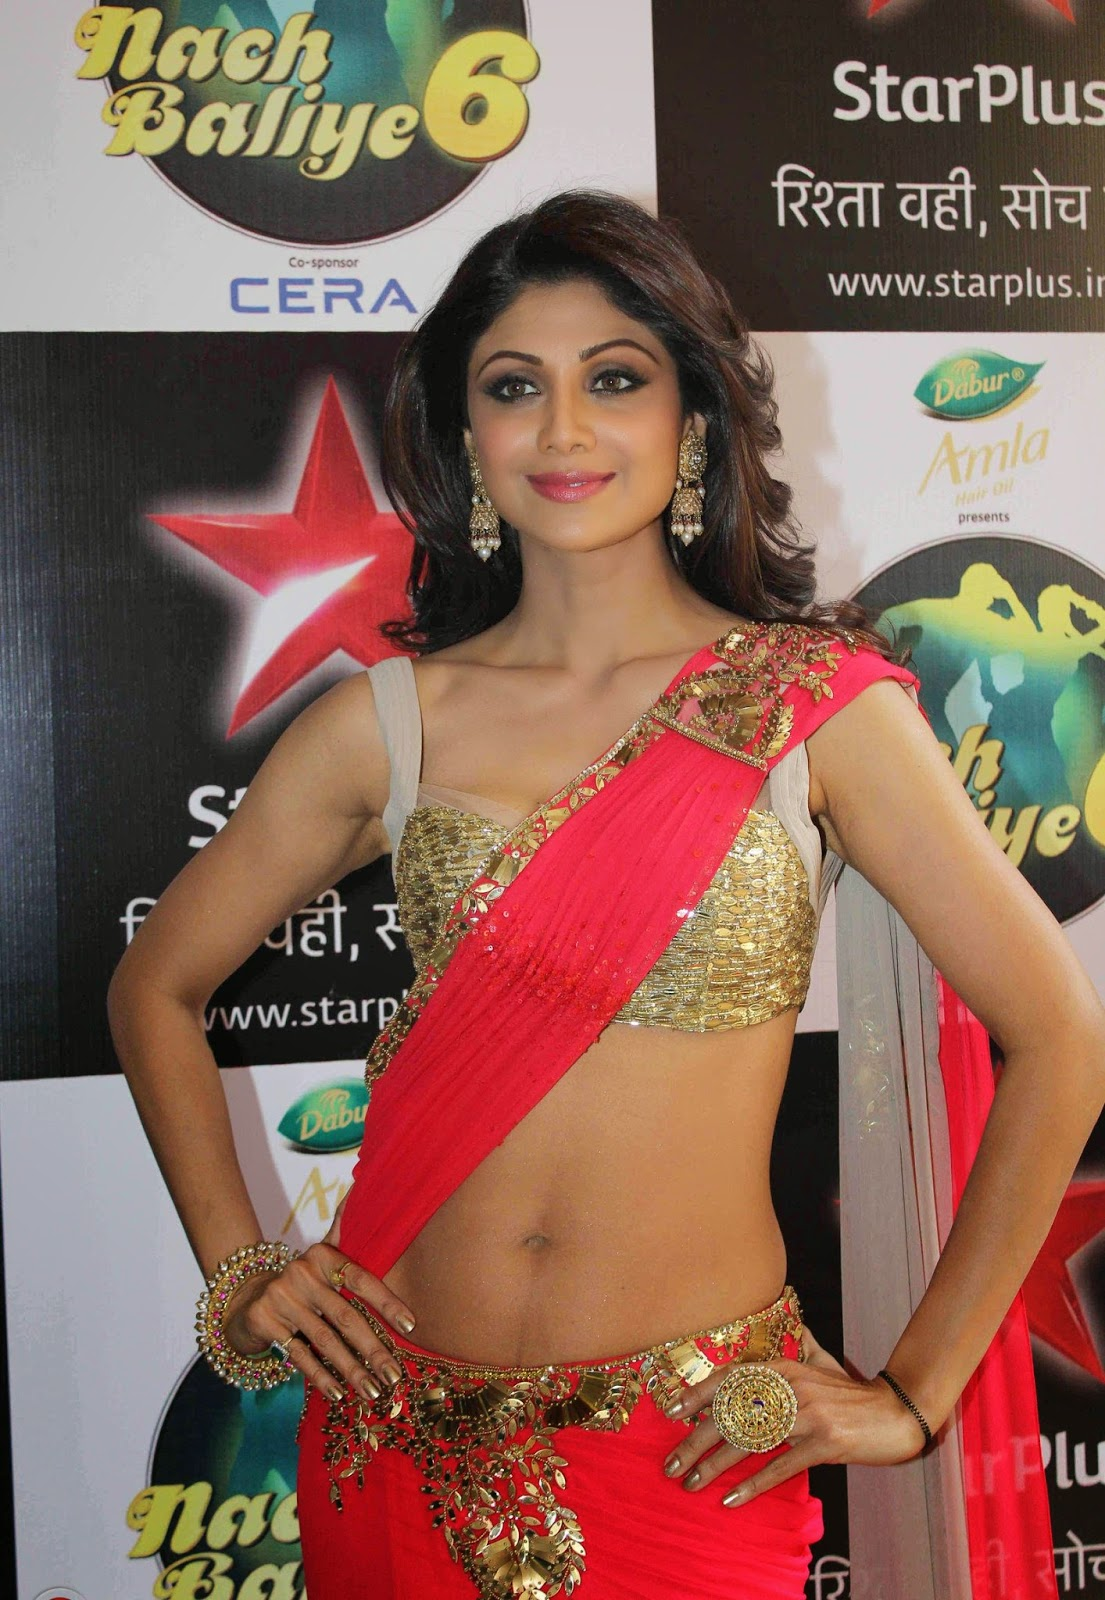 High Quality Bollywood Celebrity Pictures Shilpa Shetty